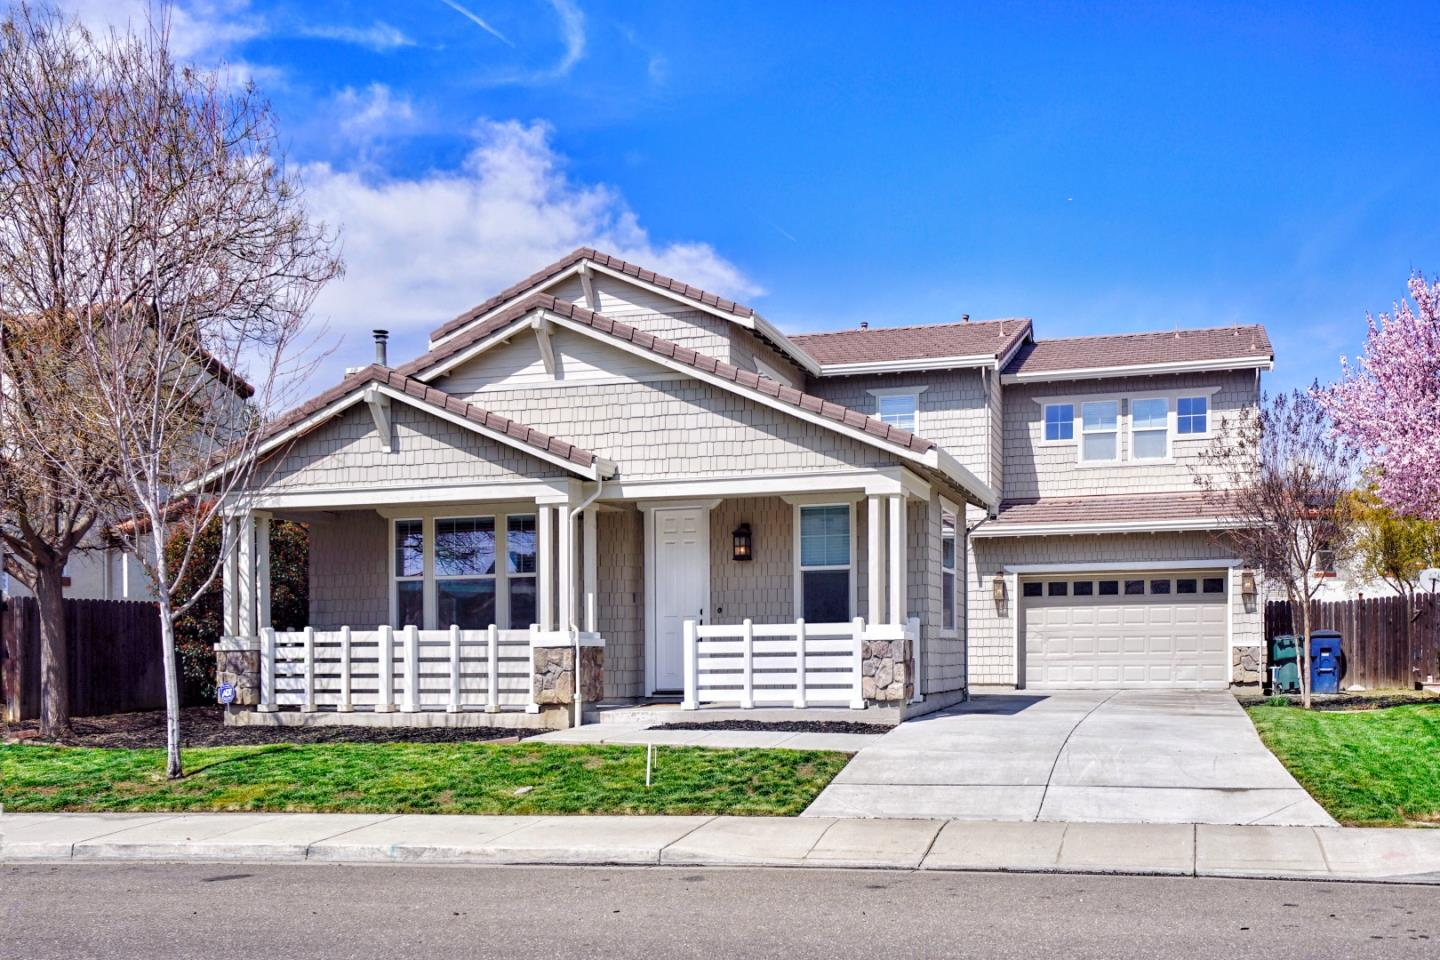 Image for 1845 Kagehiro Drive, <br>Tracy 95376